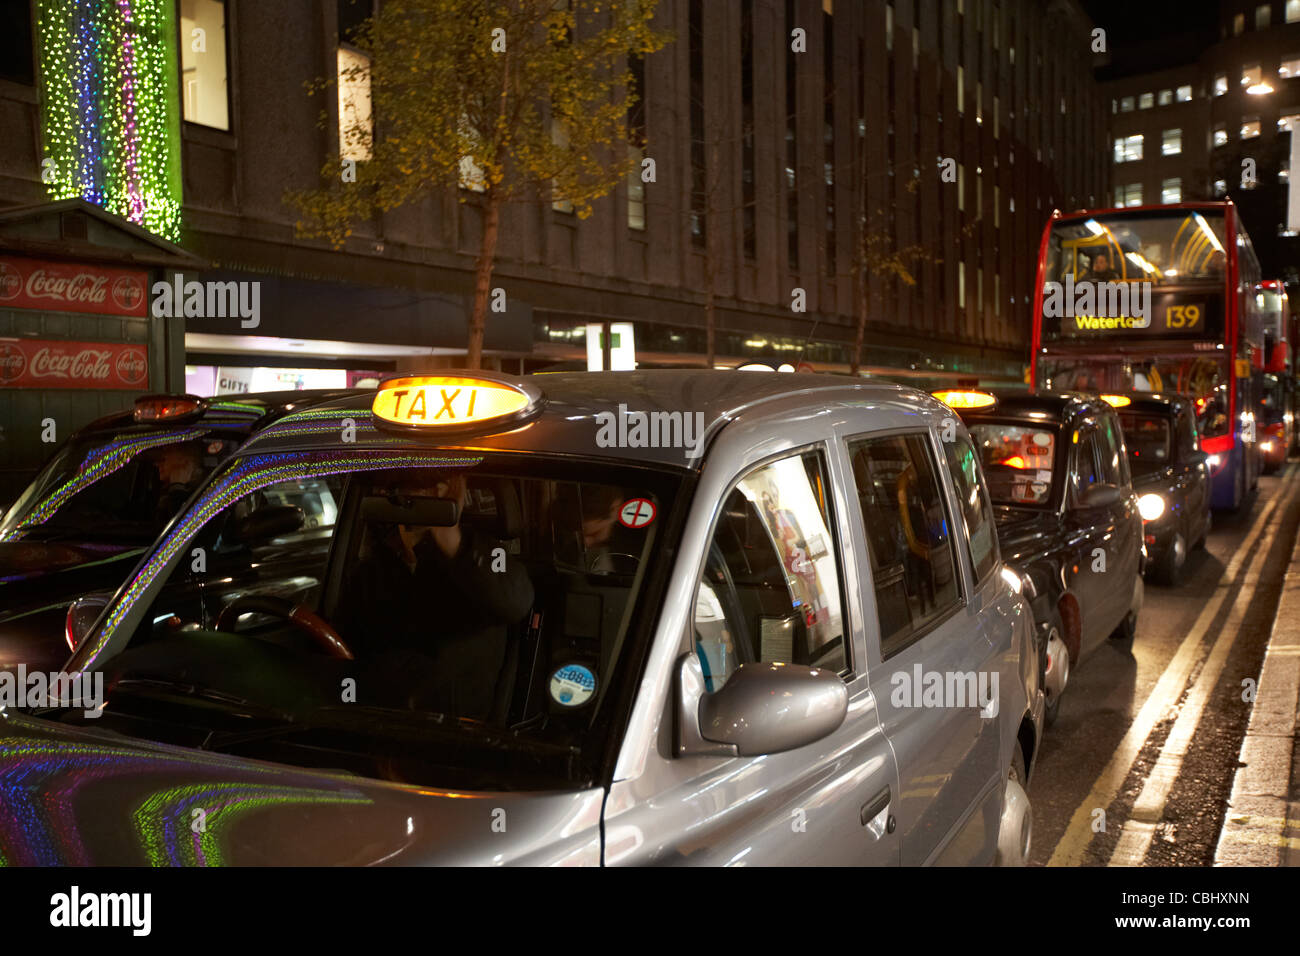 row of black london cabs taxis at night on shopping street in central london england united kingdom uk Stock Photo